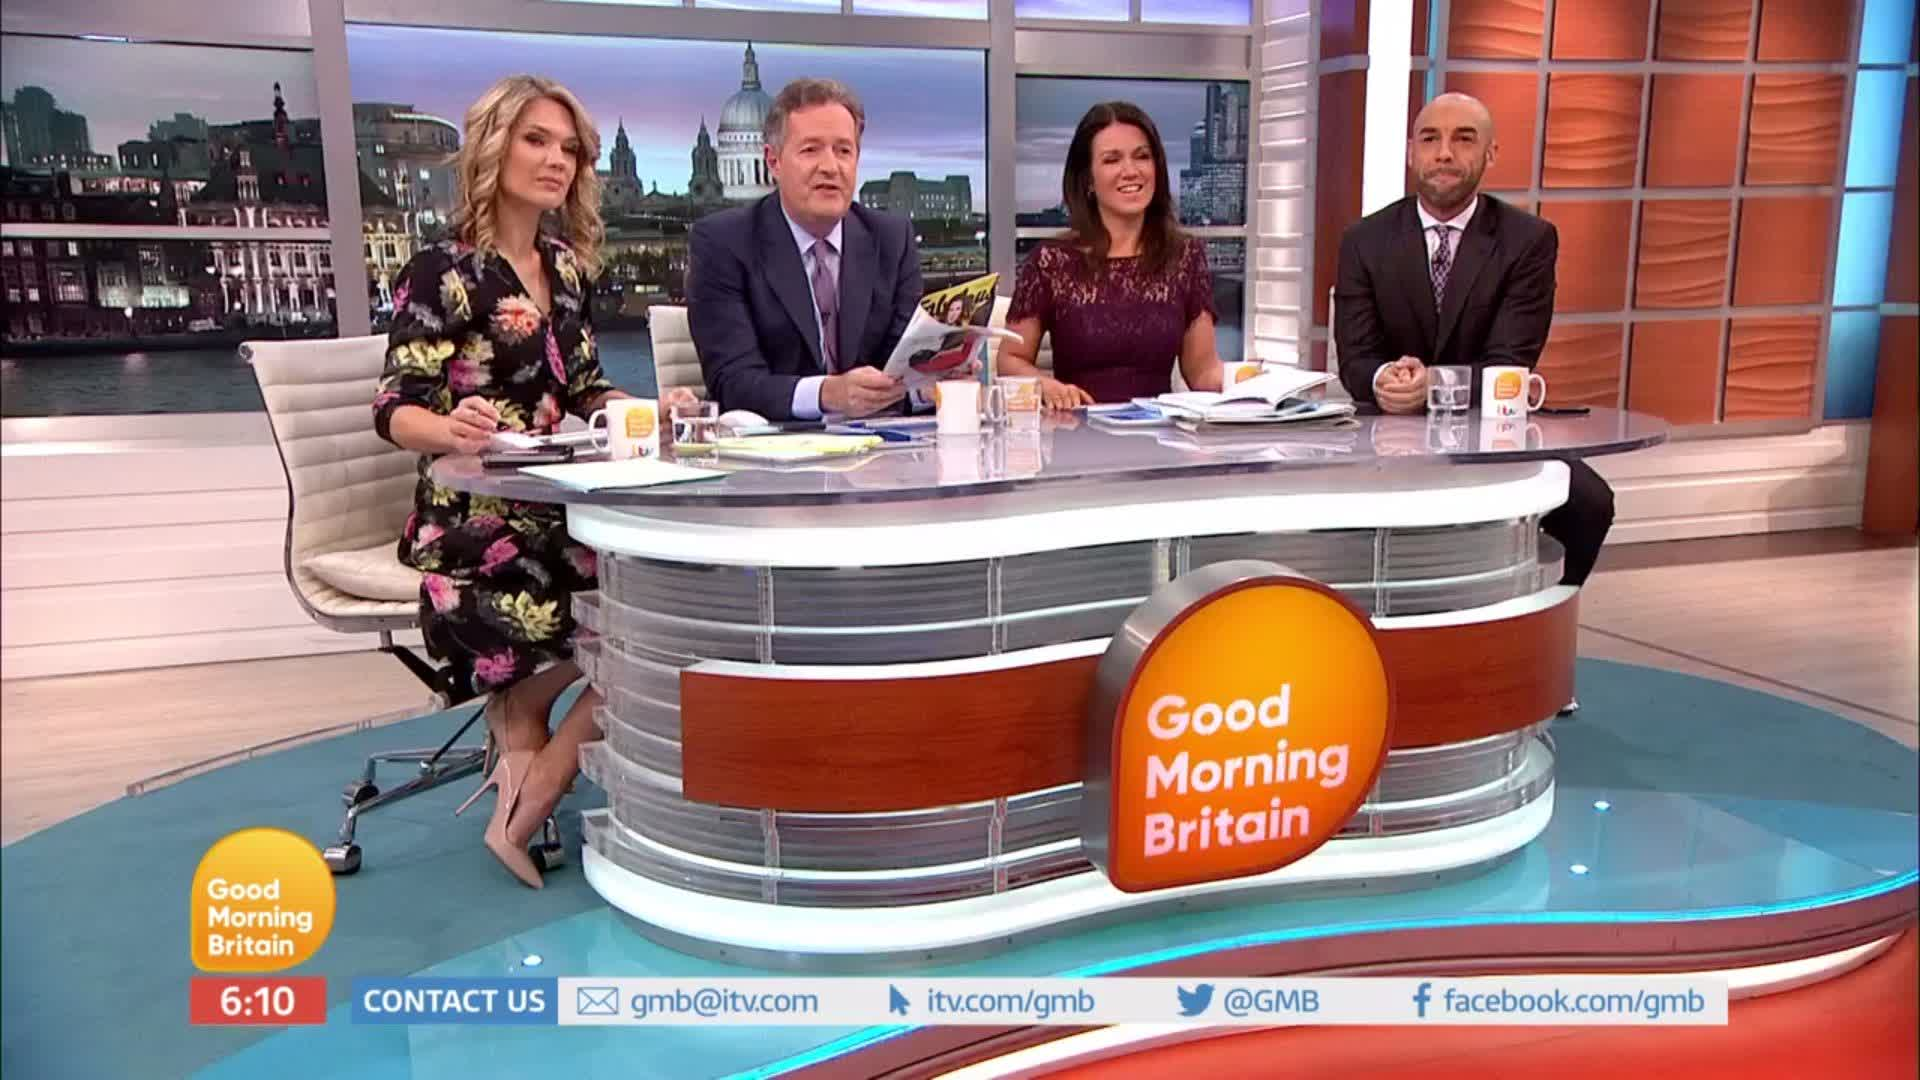 RT @GMB: 'It's never going to be you!' - @SusannaReid100 rips @PiersMorgan over her quest for love 😂 #GMB https://t.co/N6WuWPHlkO